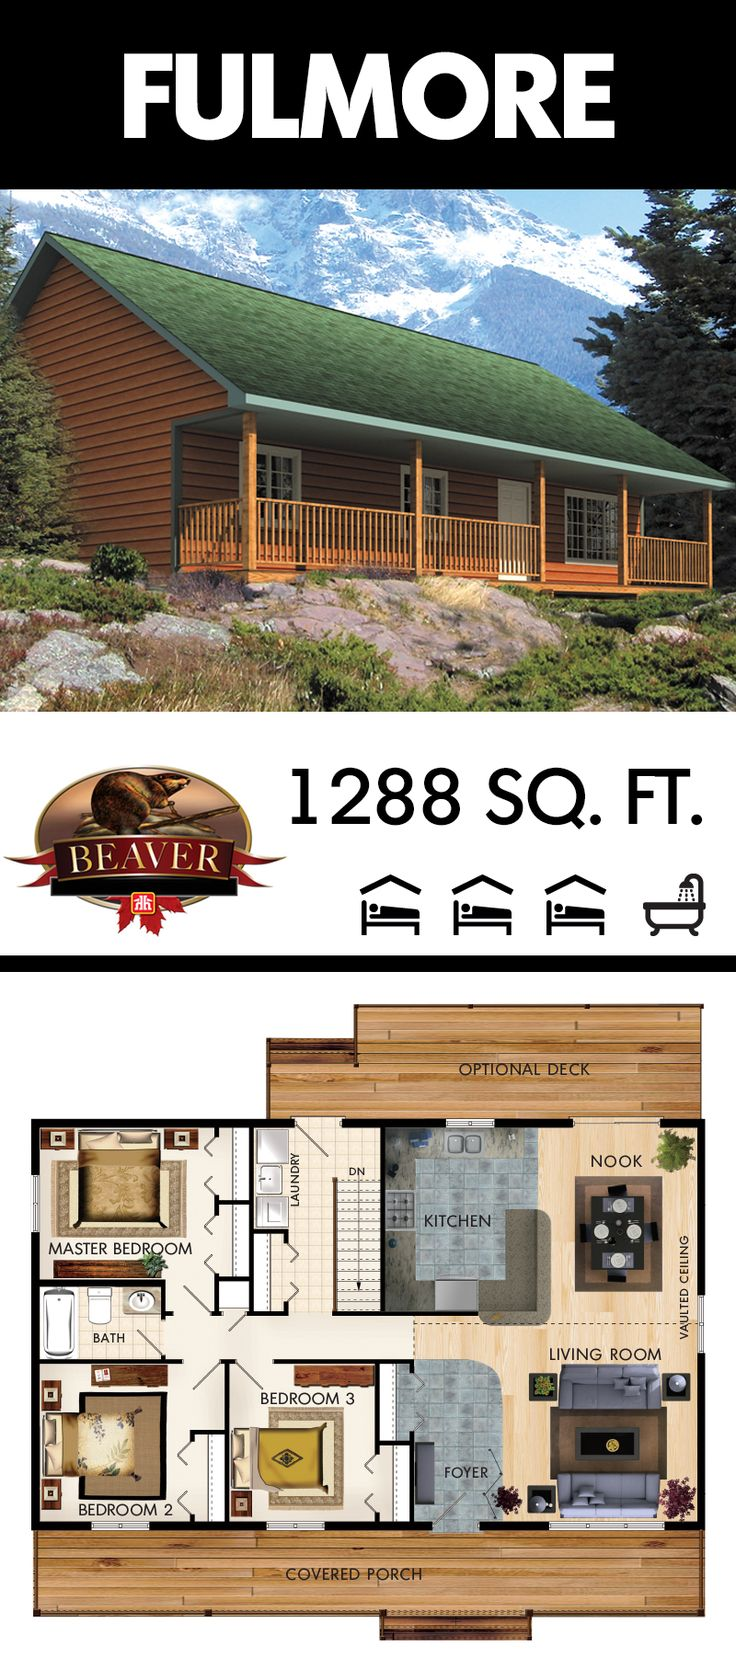 With nearly 1290 sq. ft. of space, the Fulmore model has 3 comfortably sized #bedrooms, and features an abundance of #storage space throughout. #BeaverHomesAndCottages.